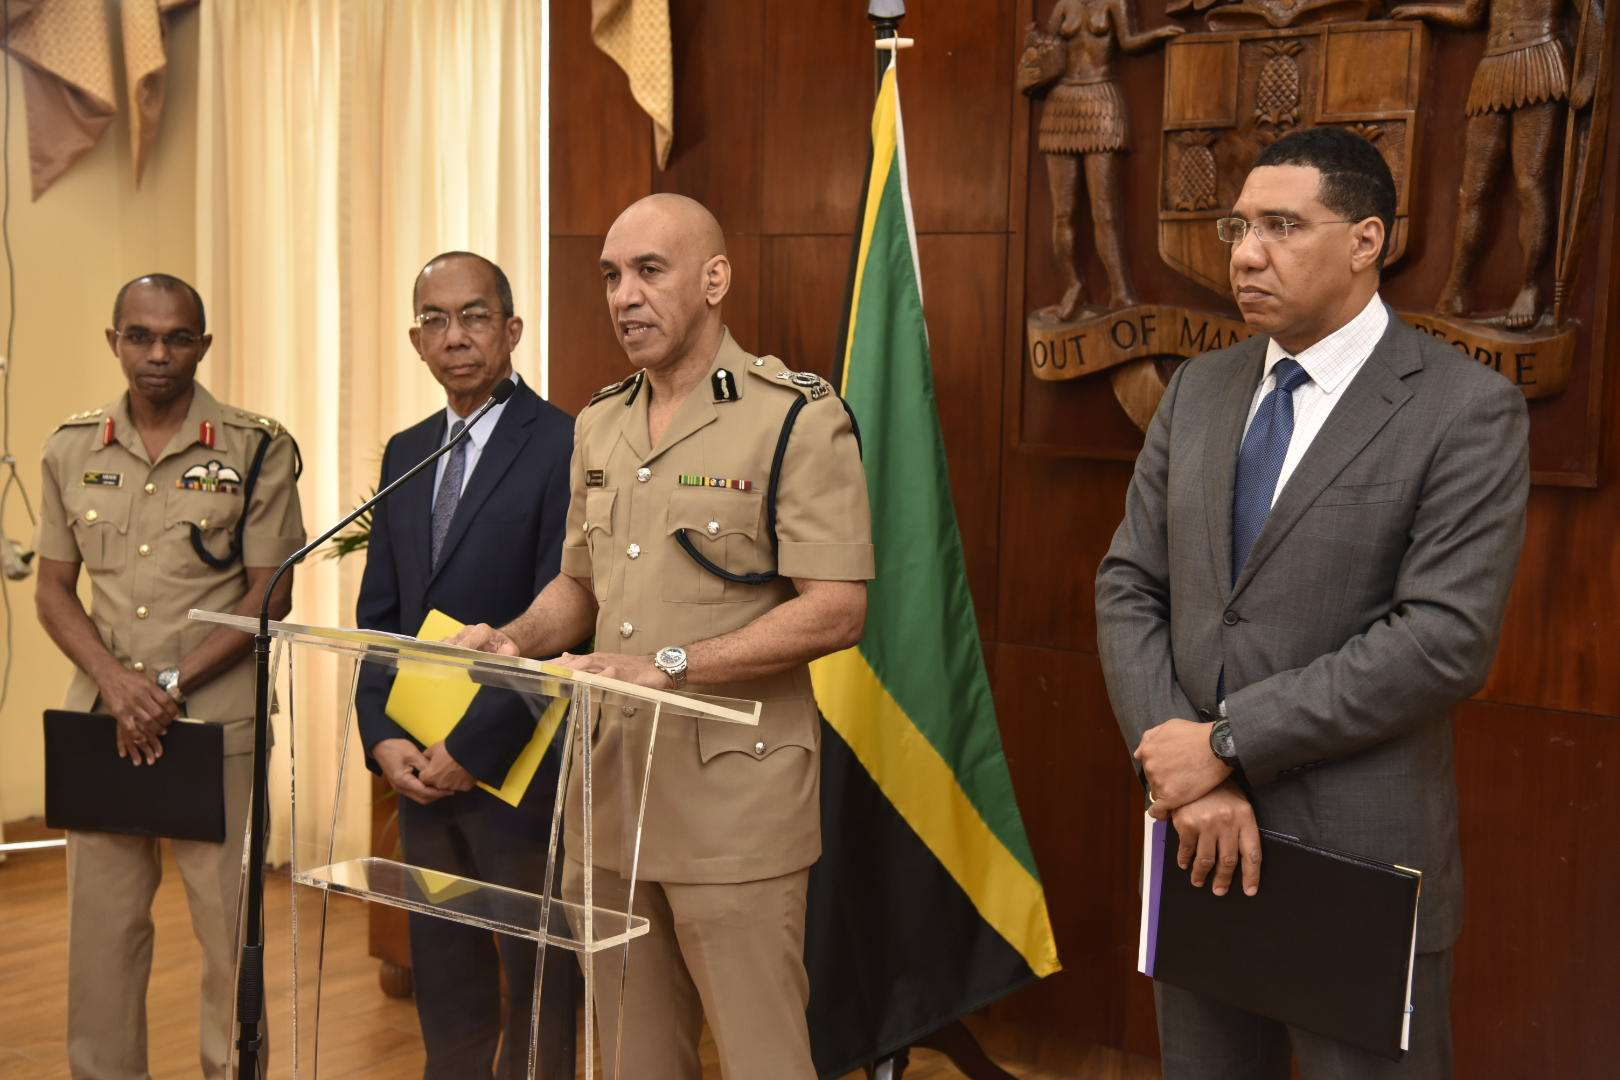 Chang: Gov't Retains Confidence in Police Commissioner Anderson